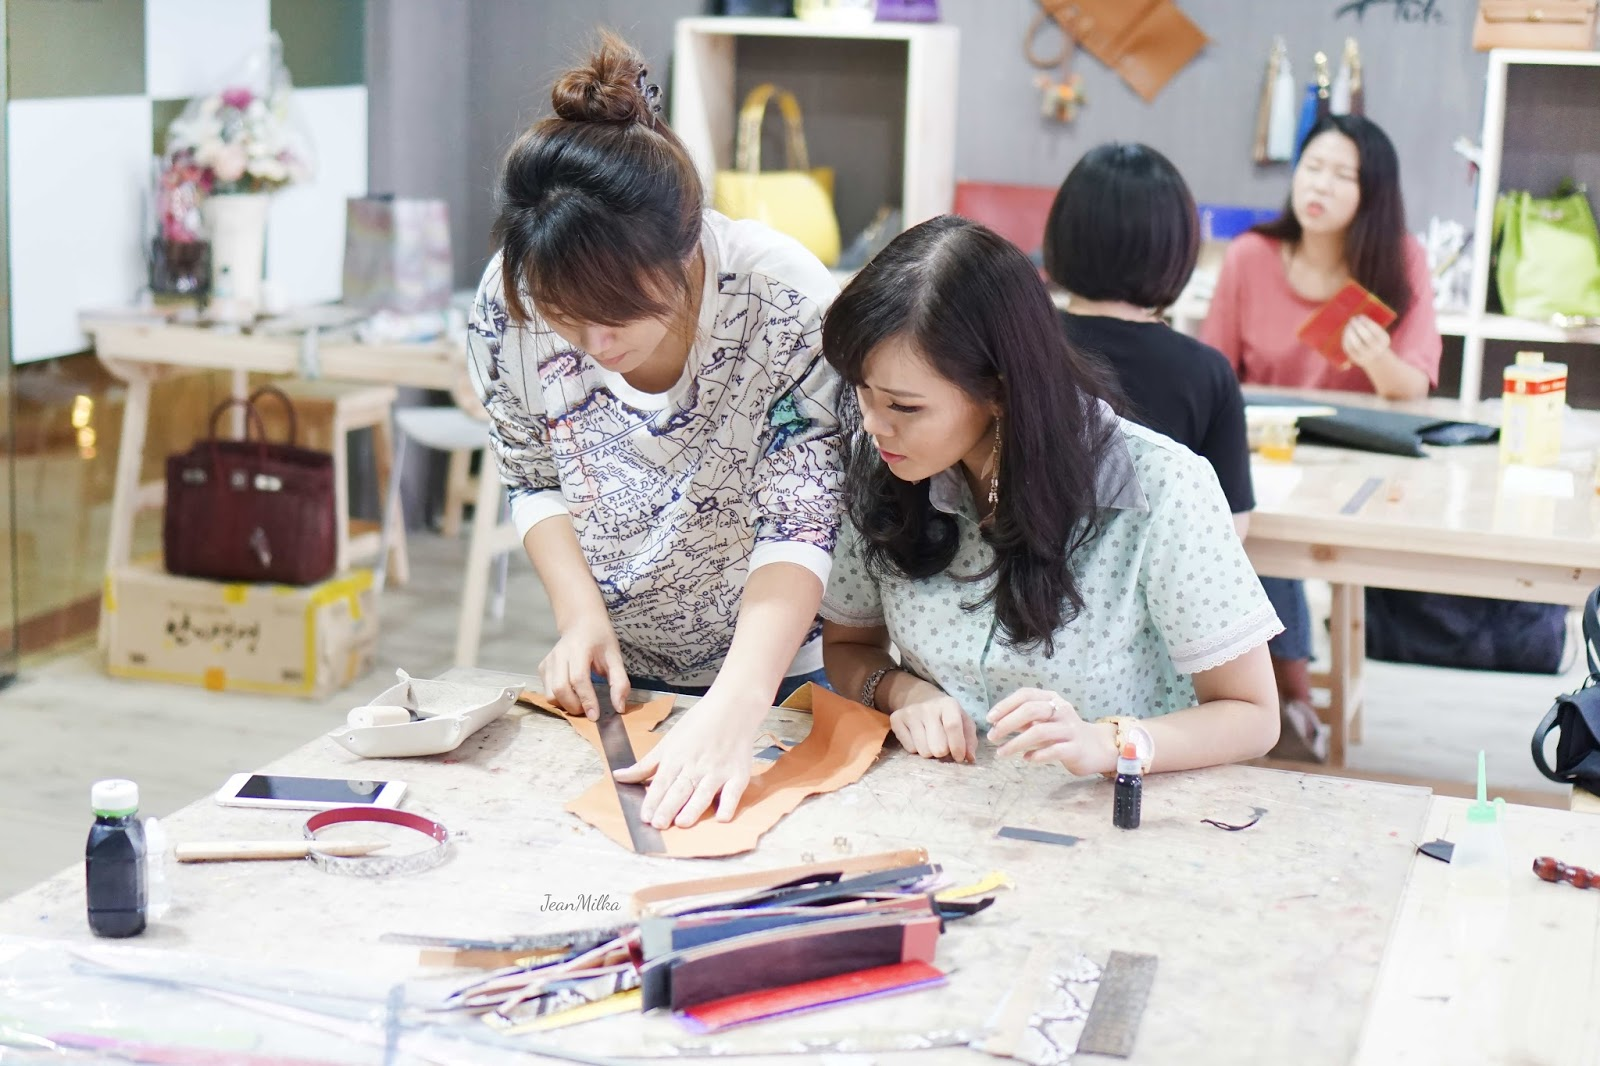 jean milka, leather class, leather course, leather workshop, studio hutz, jeanmilka, hadiah buat pacar, bisnis kulit